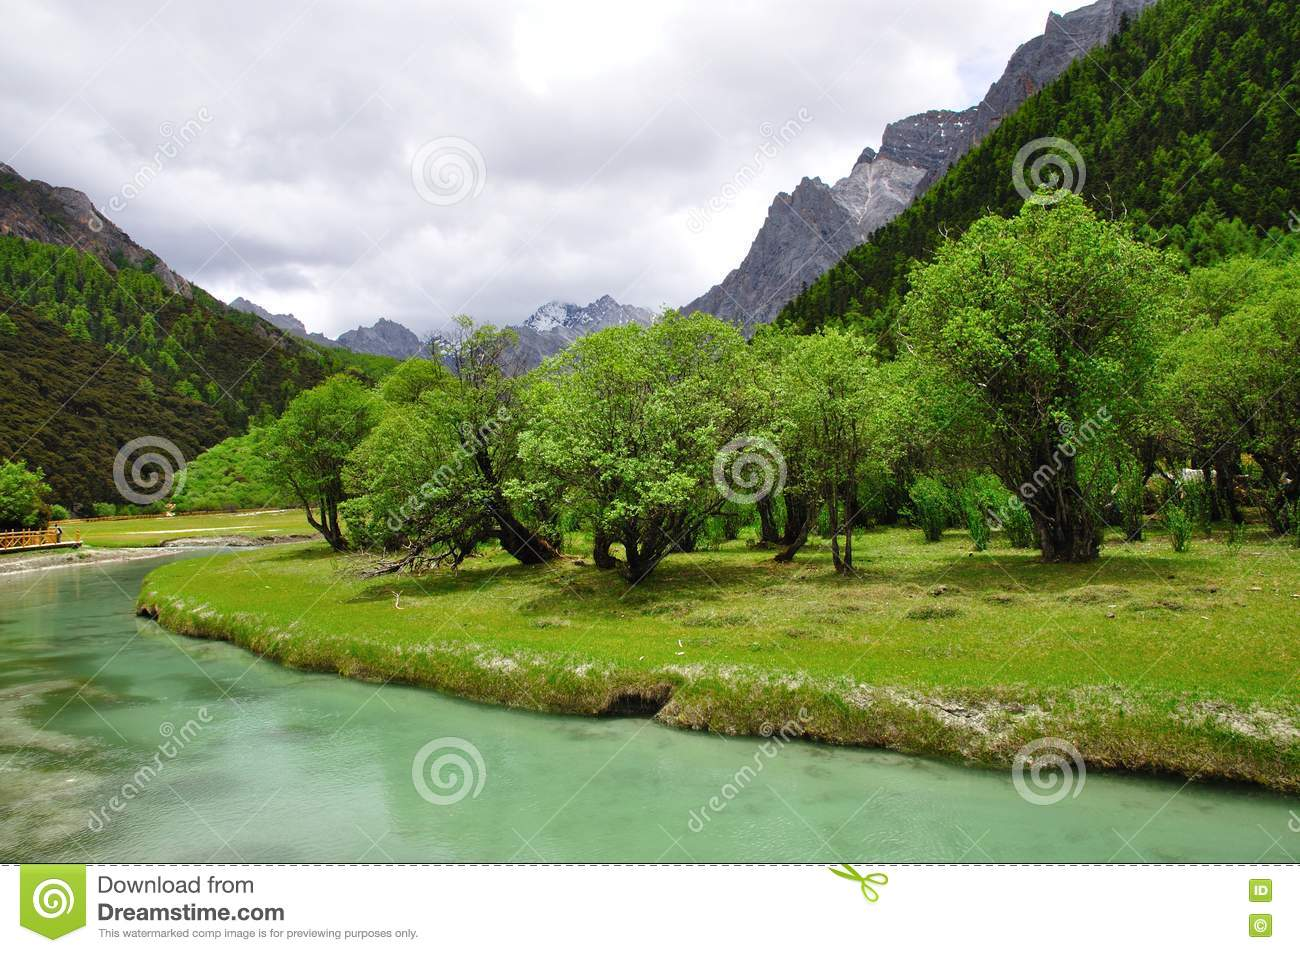 Mountain Trees And River Royalty Free Stock Images - Image: 20633279